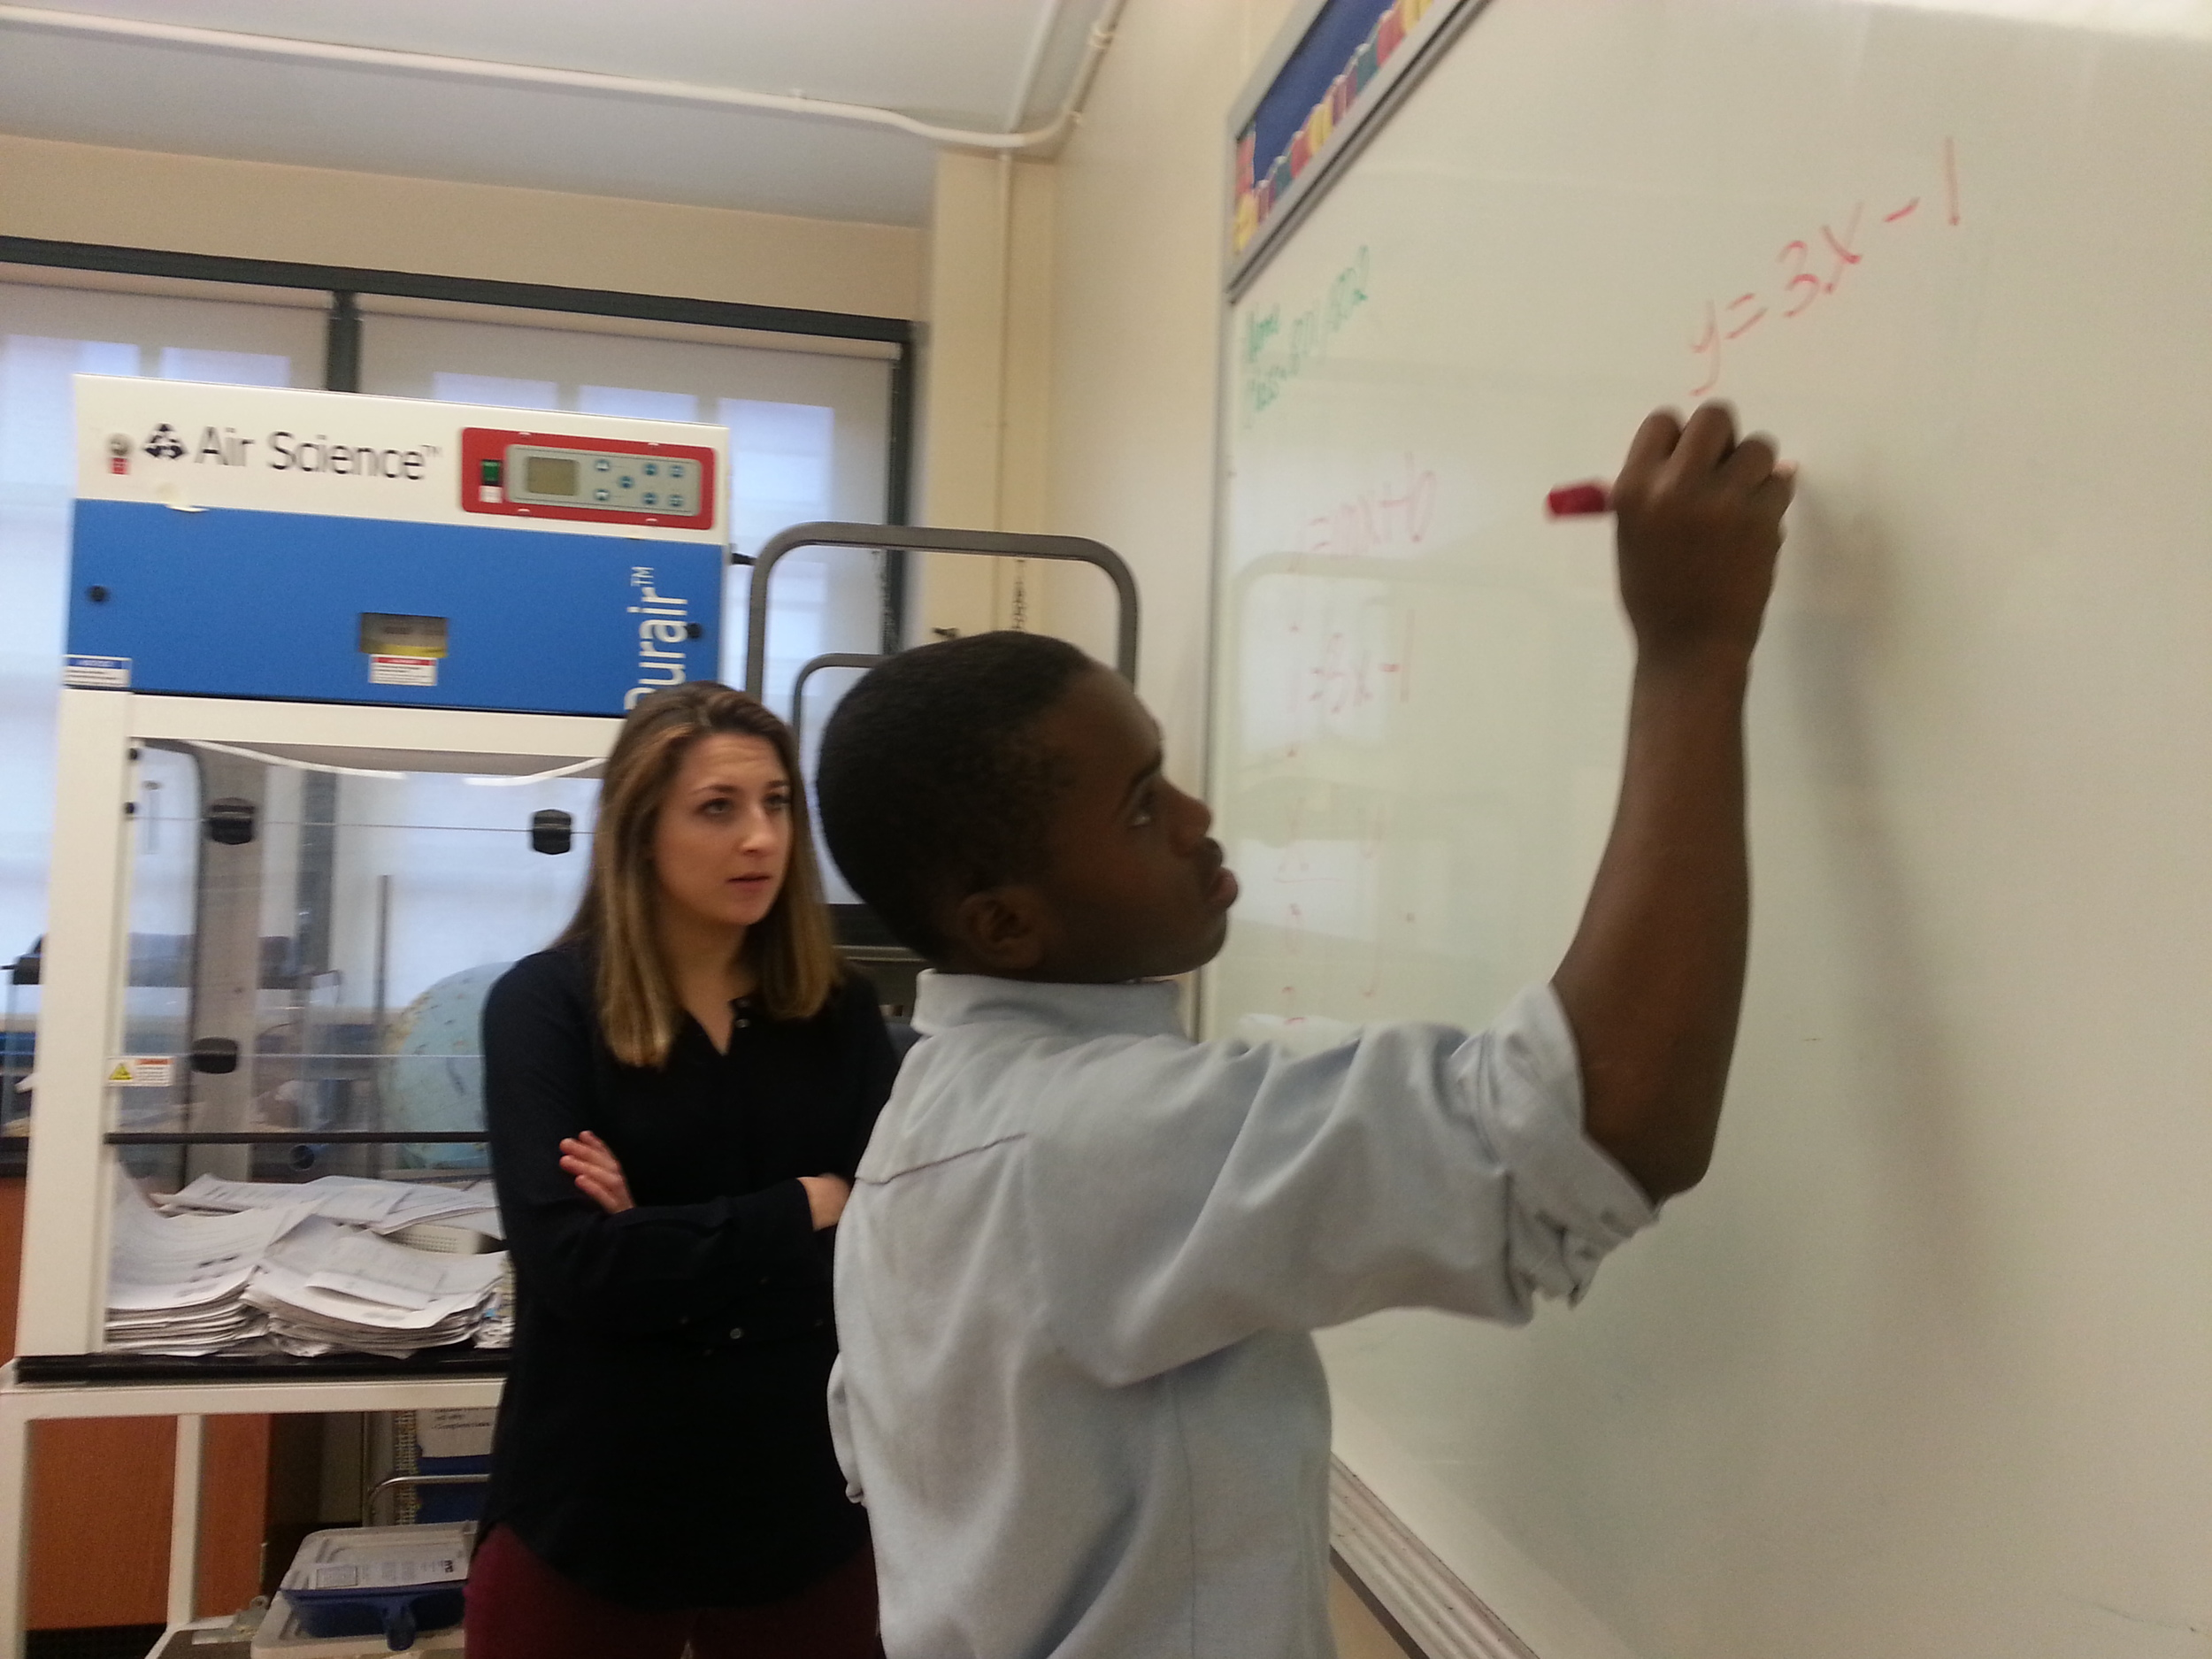 HLL volunteer Katherine Stewart working with Ryan, an 8th grader at Truth.